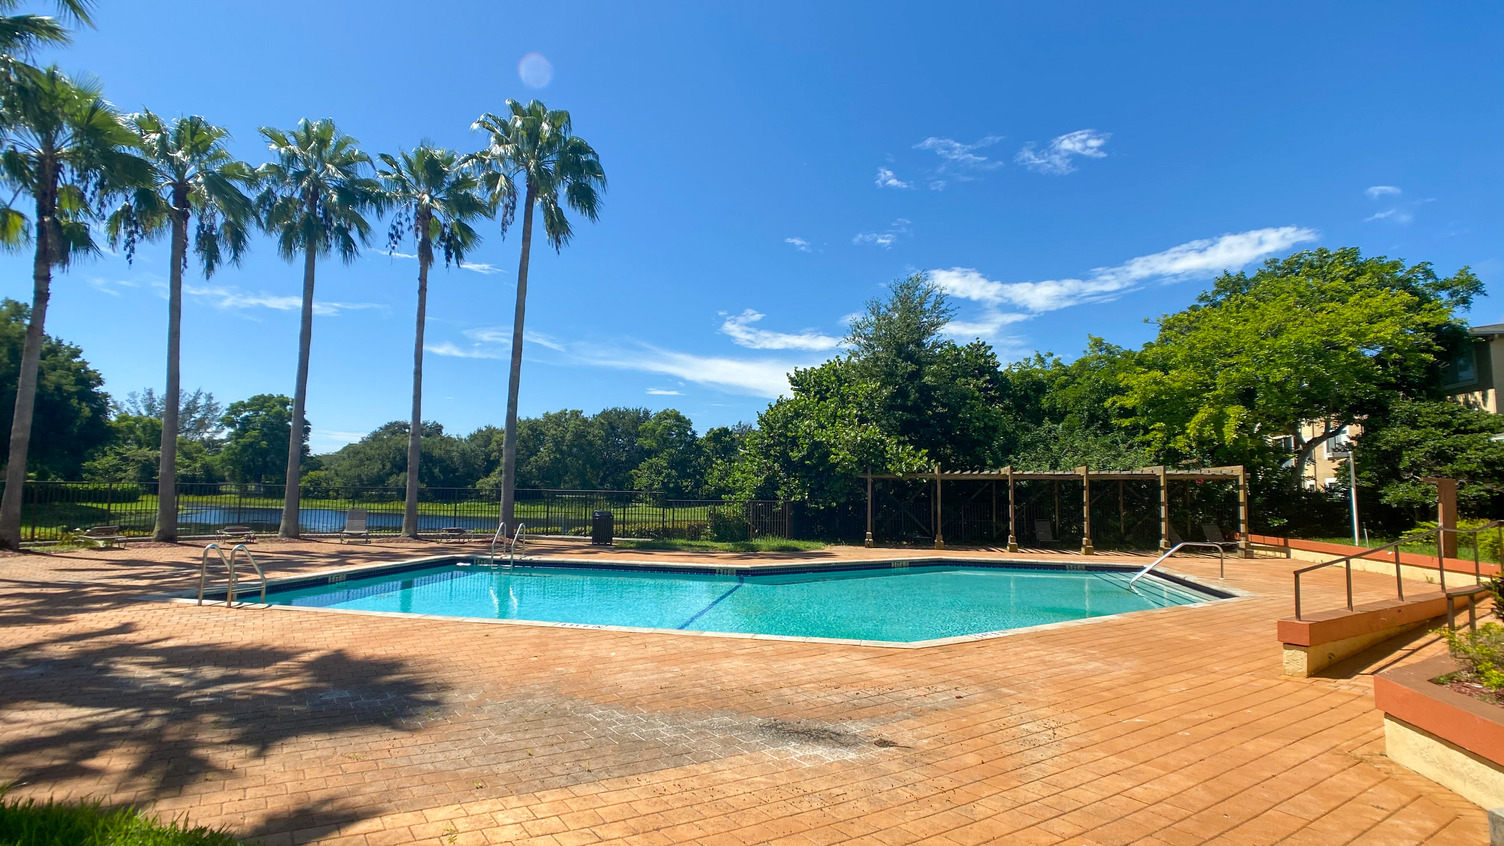 Swimming Pool and Sun Deck With Fence and Palm Trees